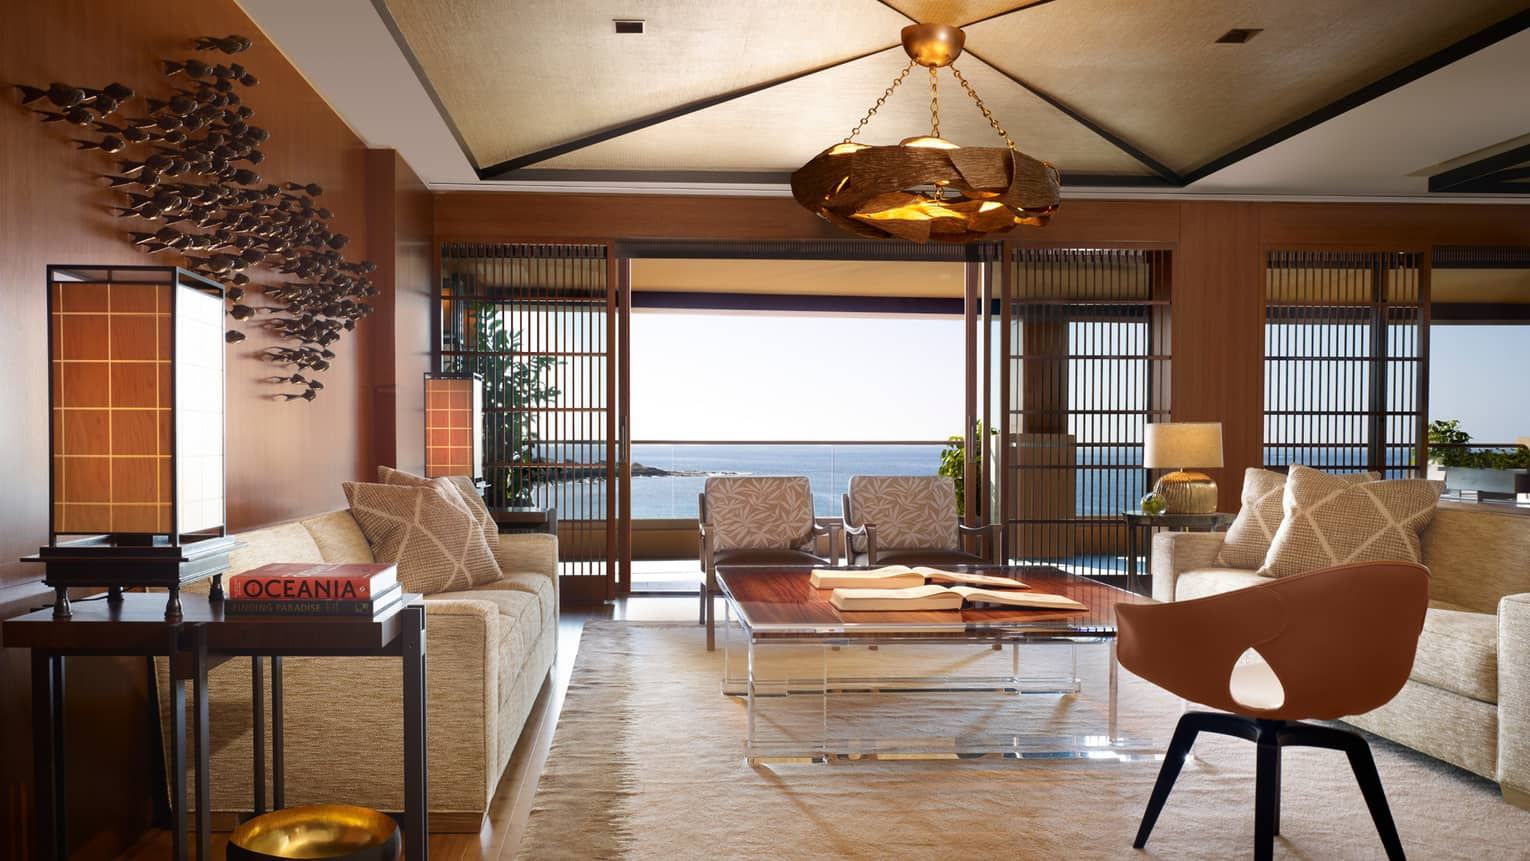 Alii Royal Suite spacious seating area with bespoke furnishings, mid-century style sofas, chairs, light